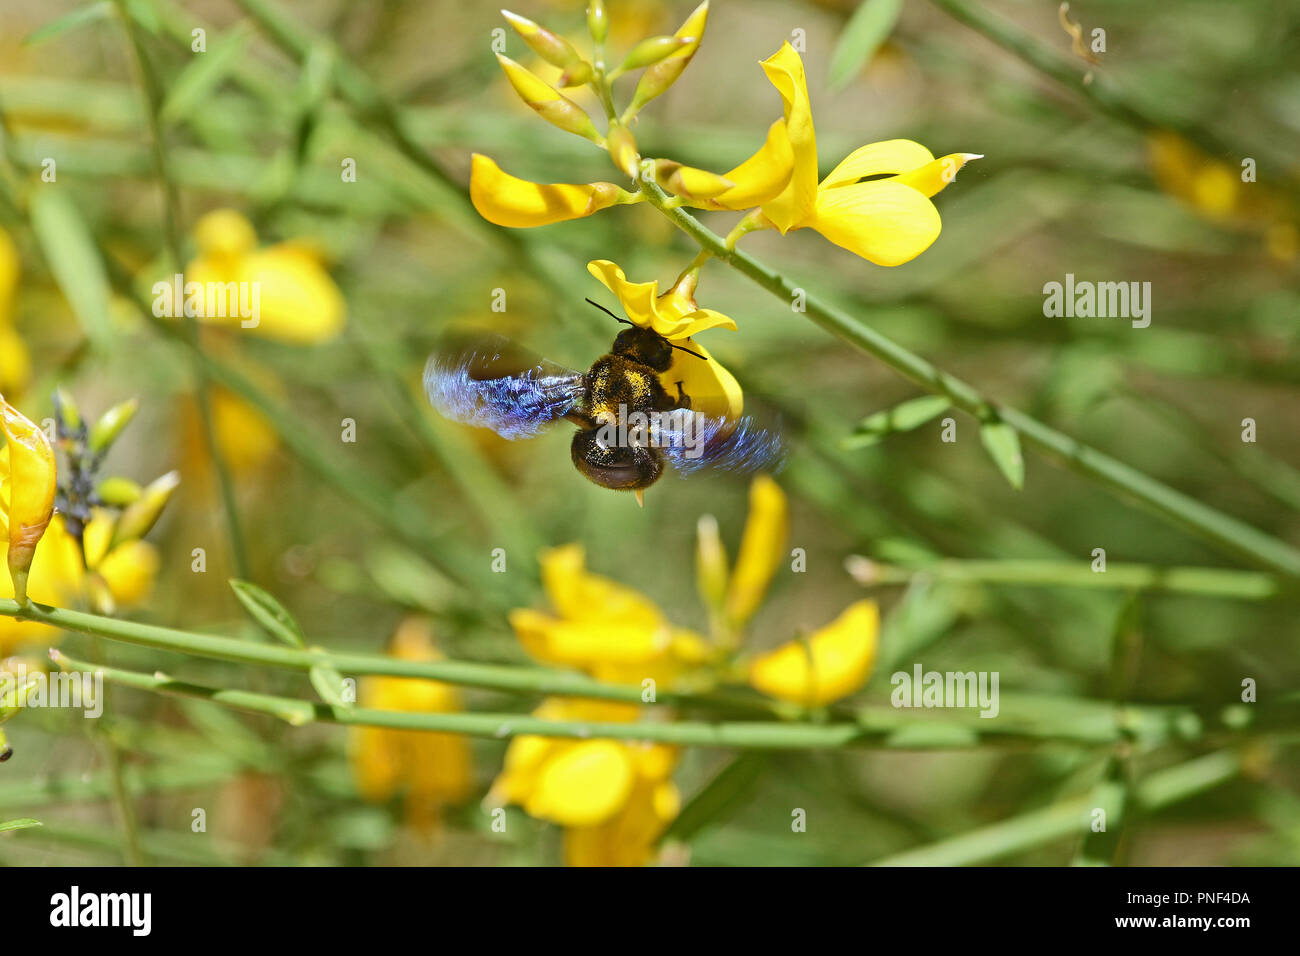 Carpenter Bee Latin Name Xylocopa Violacea On Yellow Broom Or